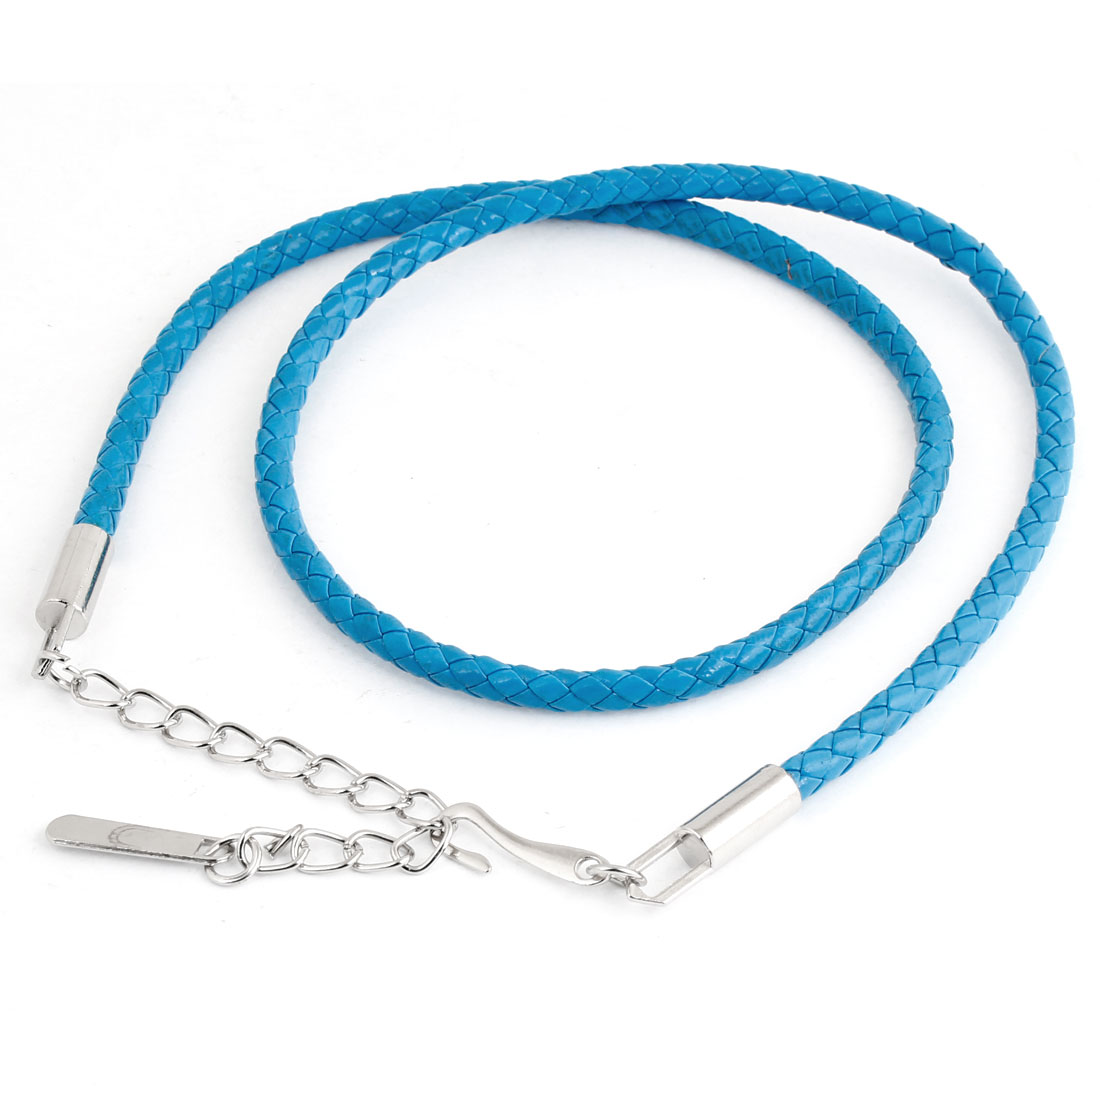 Metal Hook Buckle Knit Style Faux Leather Chain Belt Waist Blue for Women